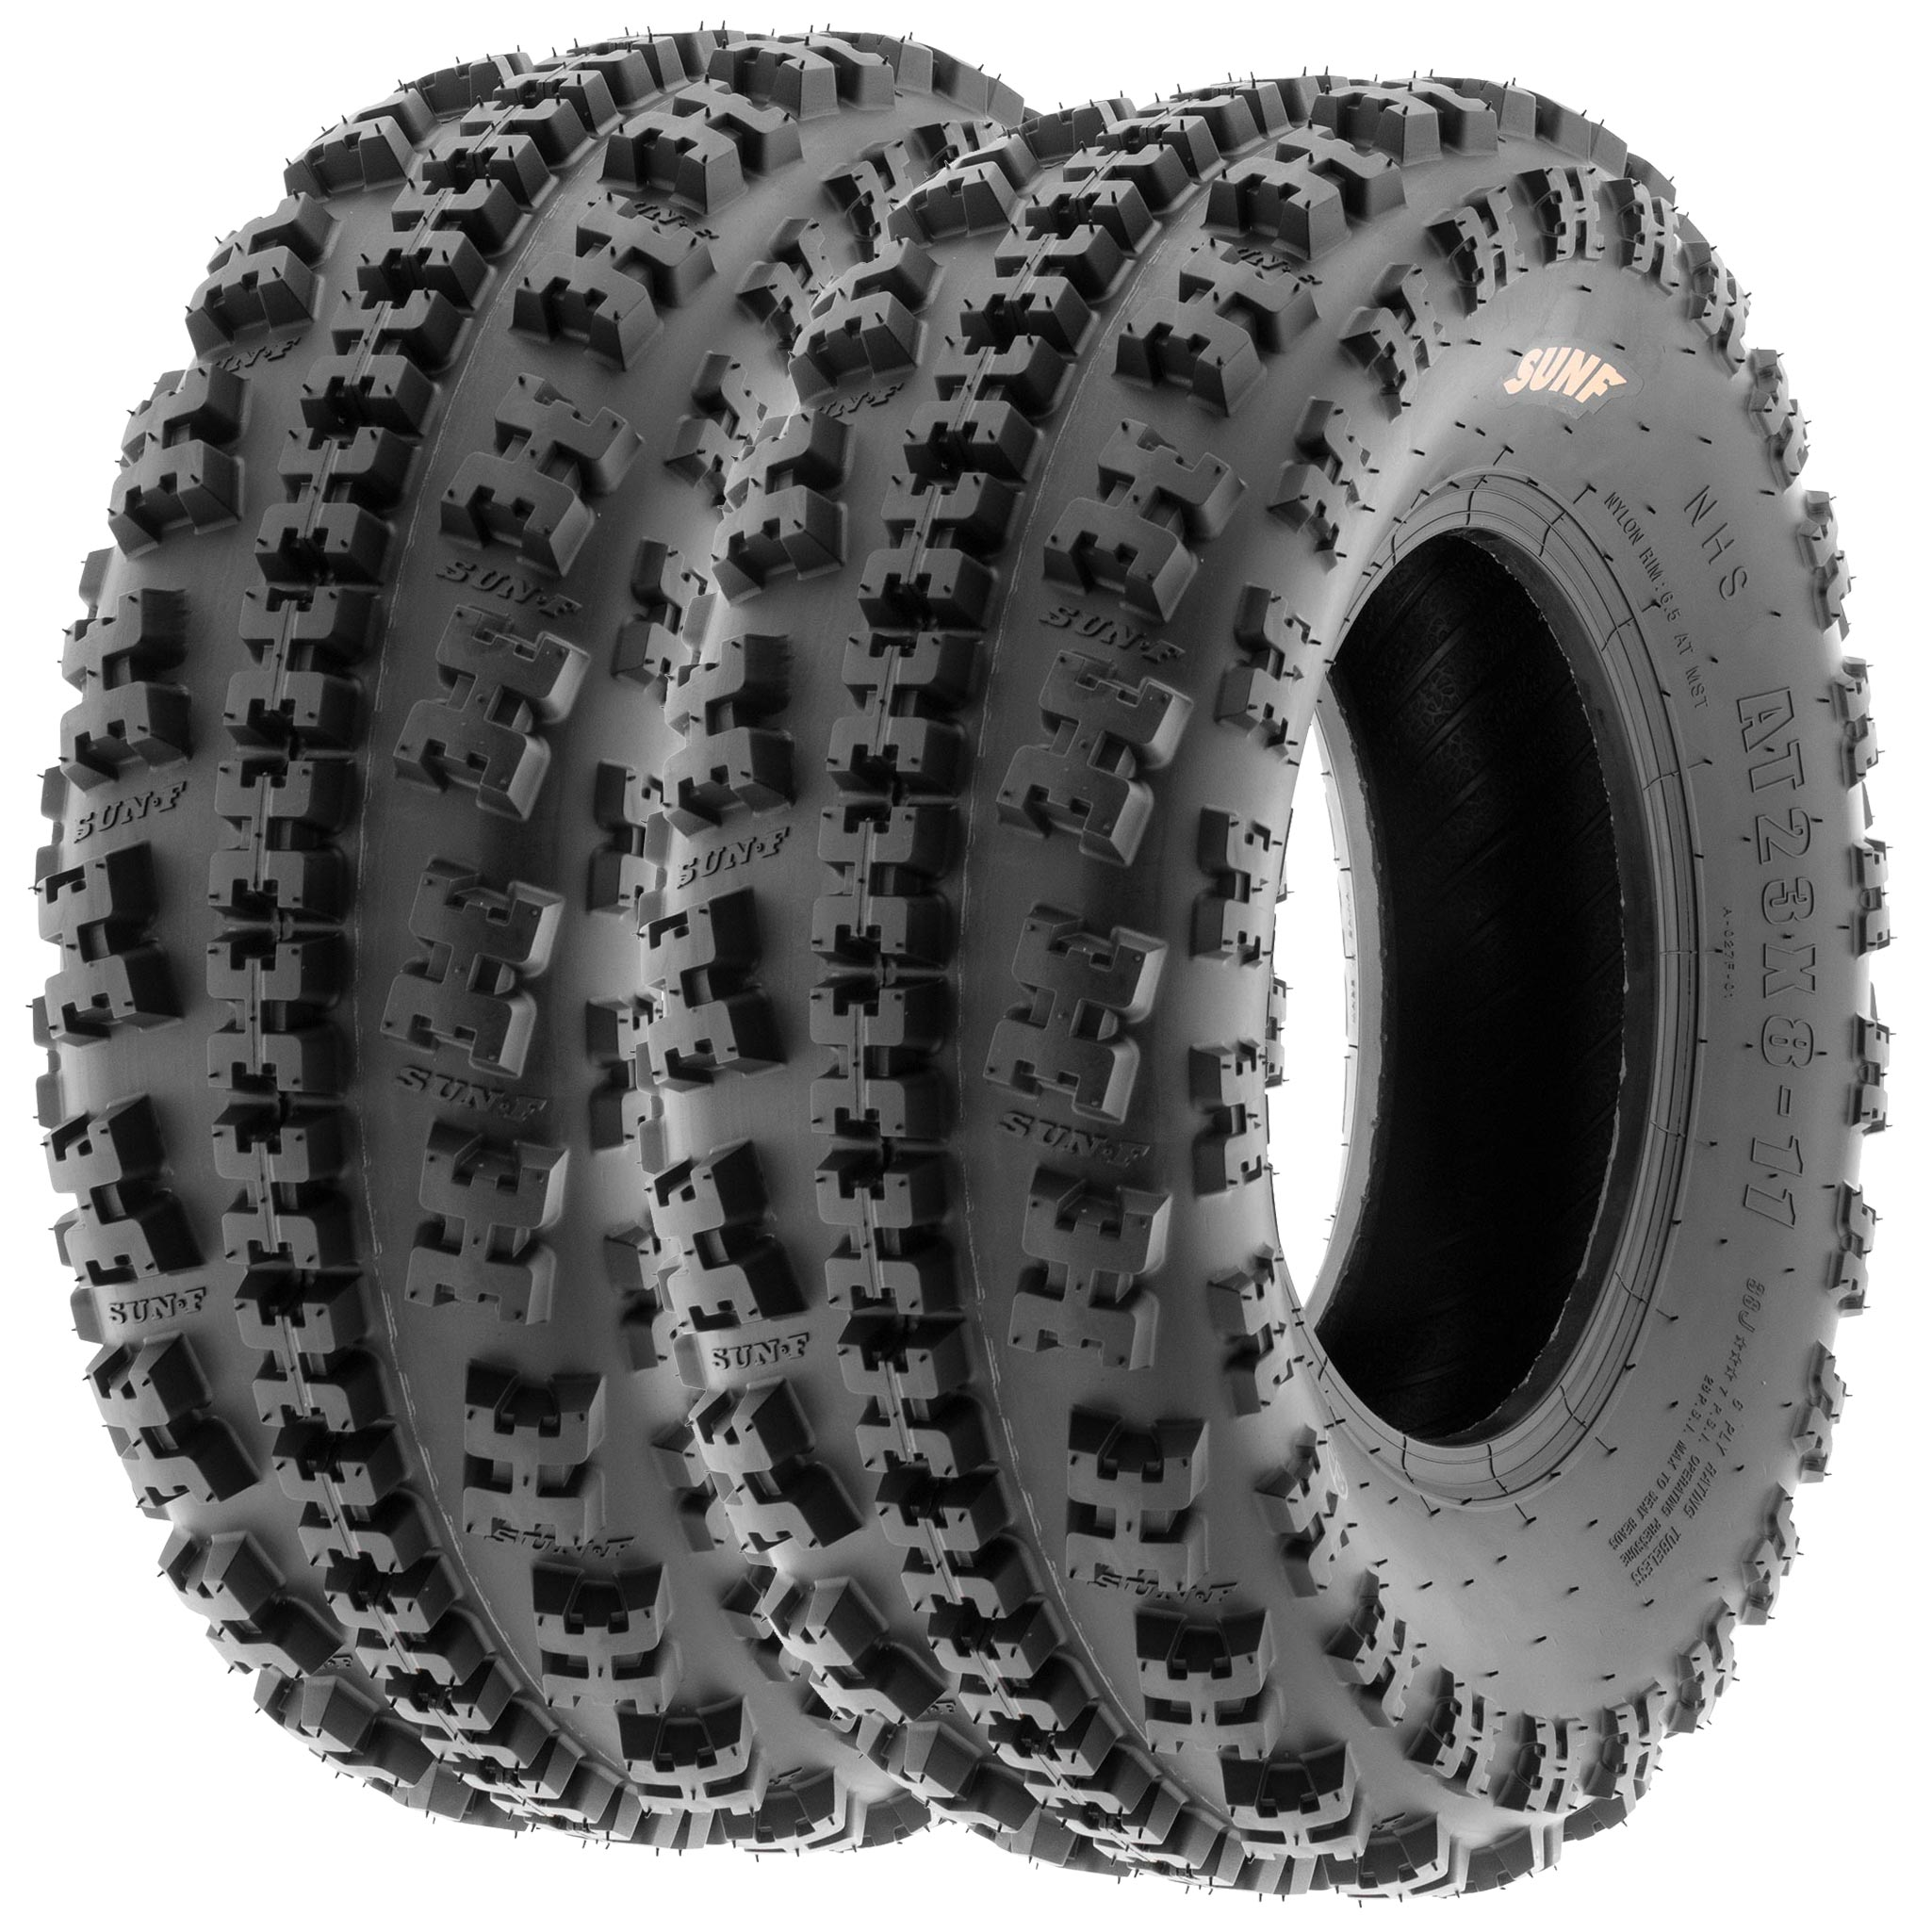 21x7-10 21x7x10 ATV All Trail AT 6 Ply Tire A027 by SunF